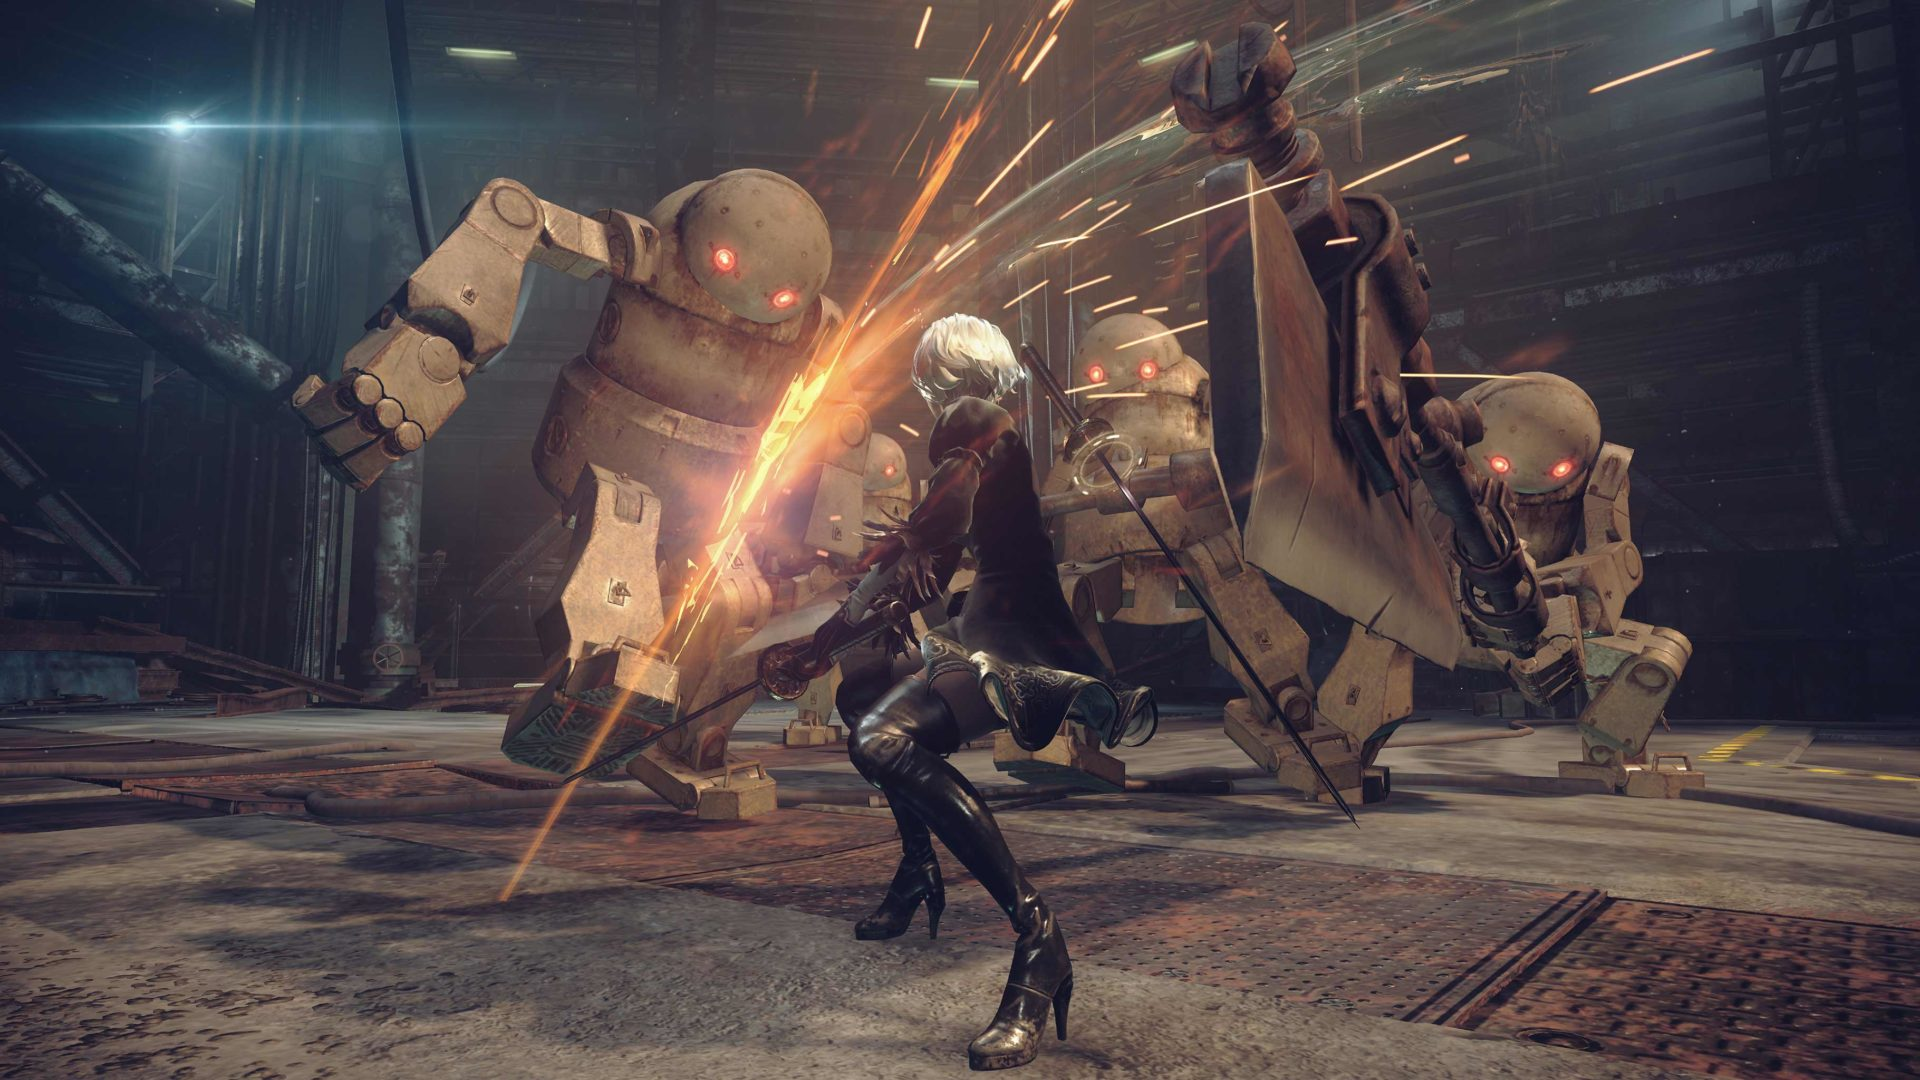 Nier Automata: 900p 60FPS on PS4, 1080p 60FPS on PS4 Pro